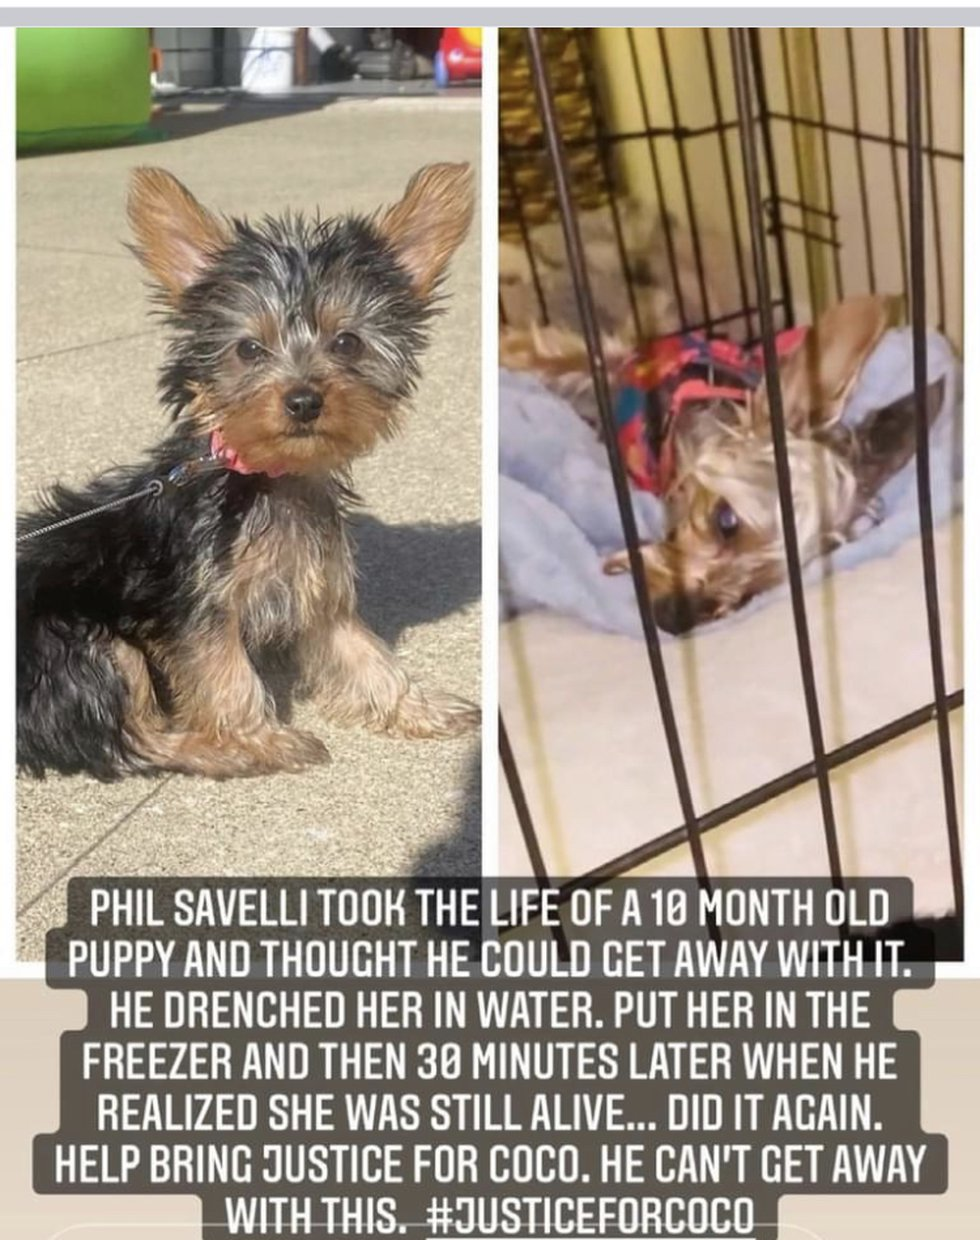 #JusticeForCoco: Police arrest Phil Savelli for animal cruelty after 10-month old puppy was...